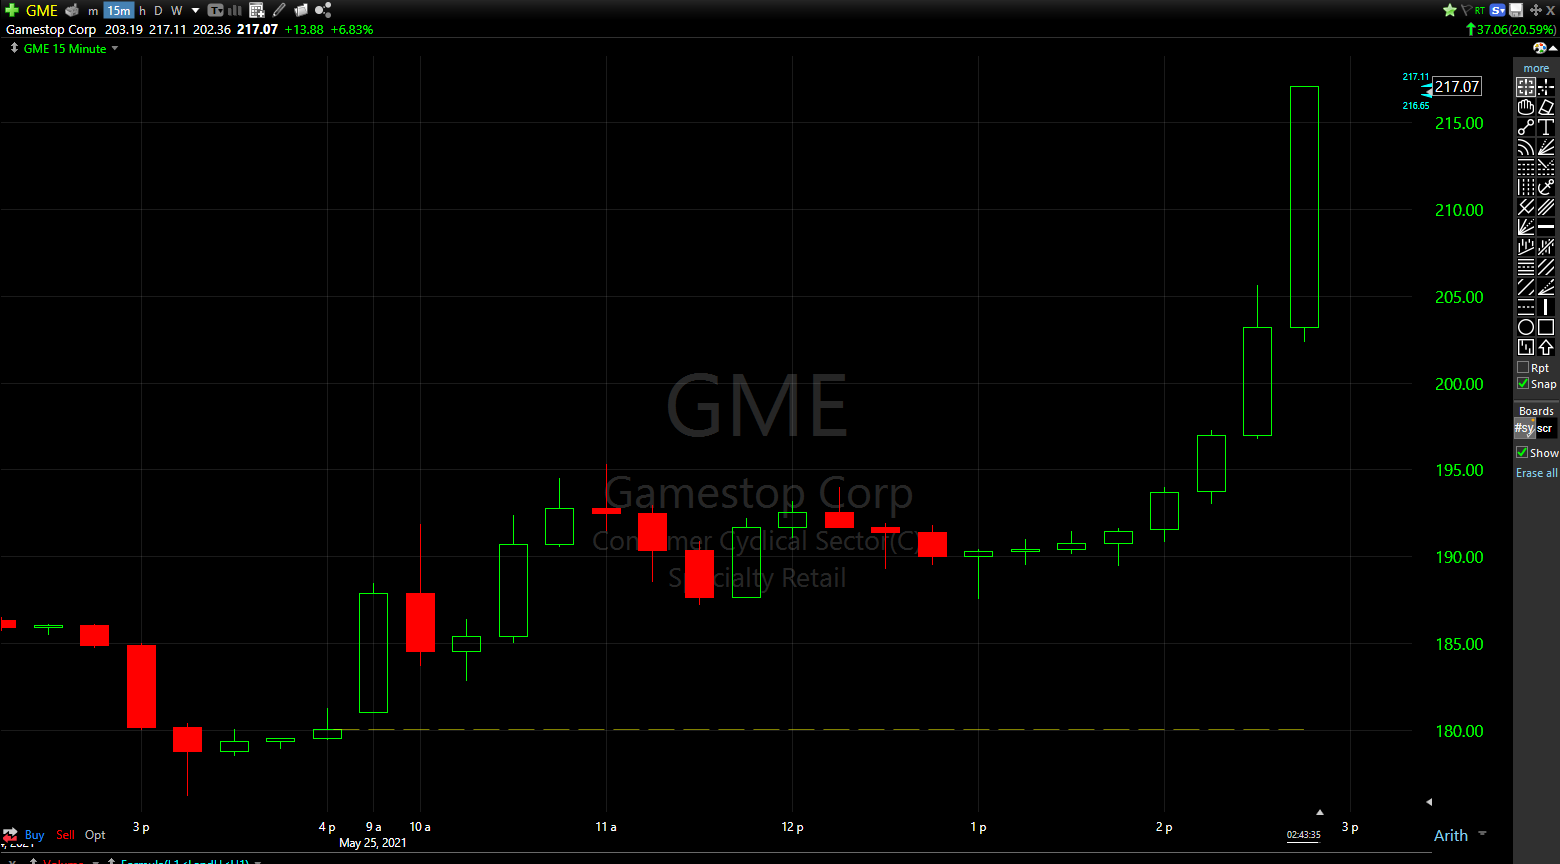 GameStop's stock jumped 20% today, in what appears to be a continuation of the mother of all short squeezes.